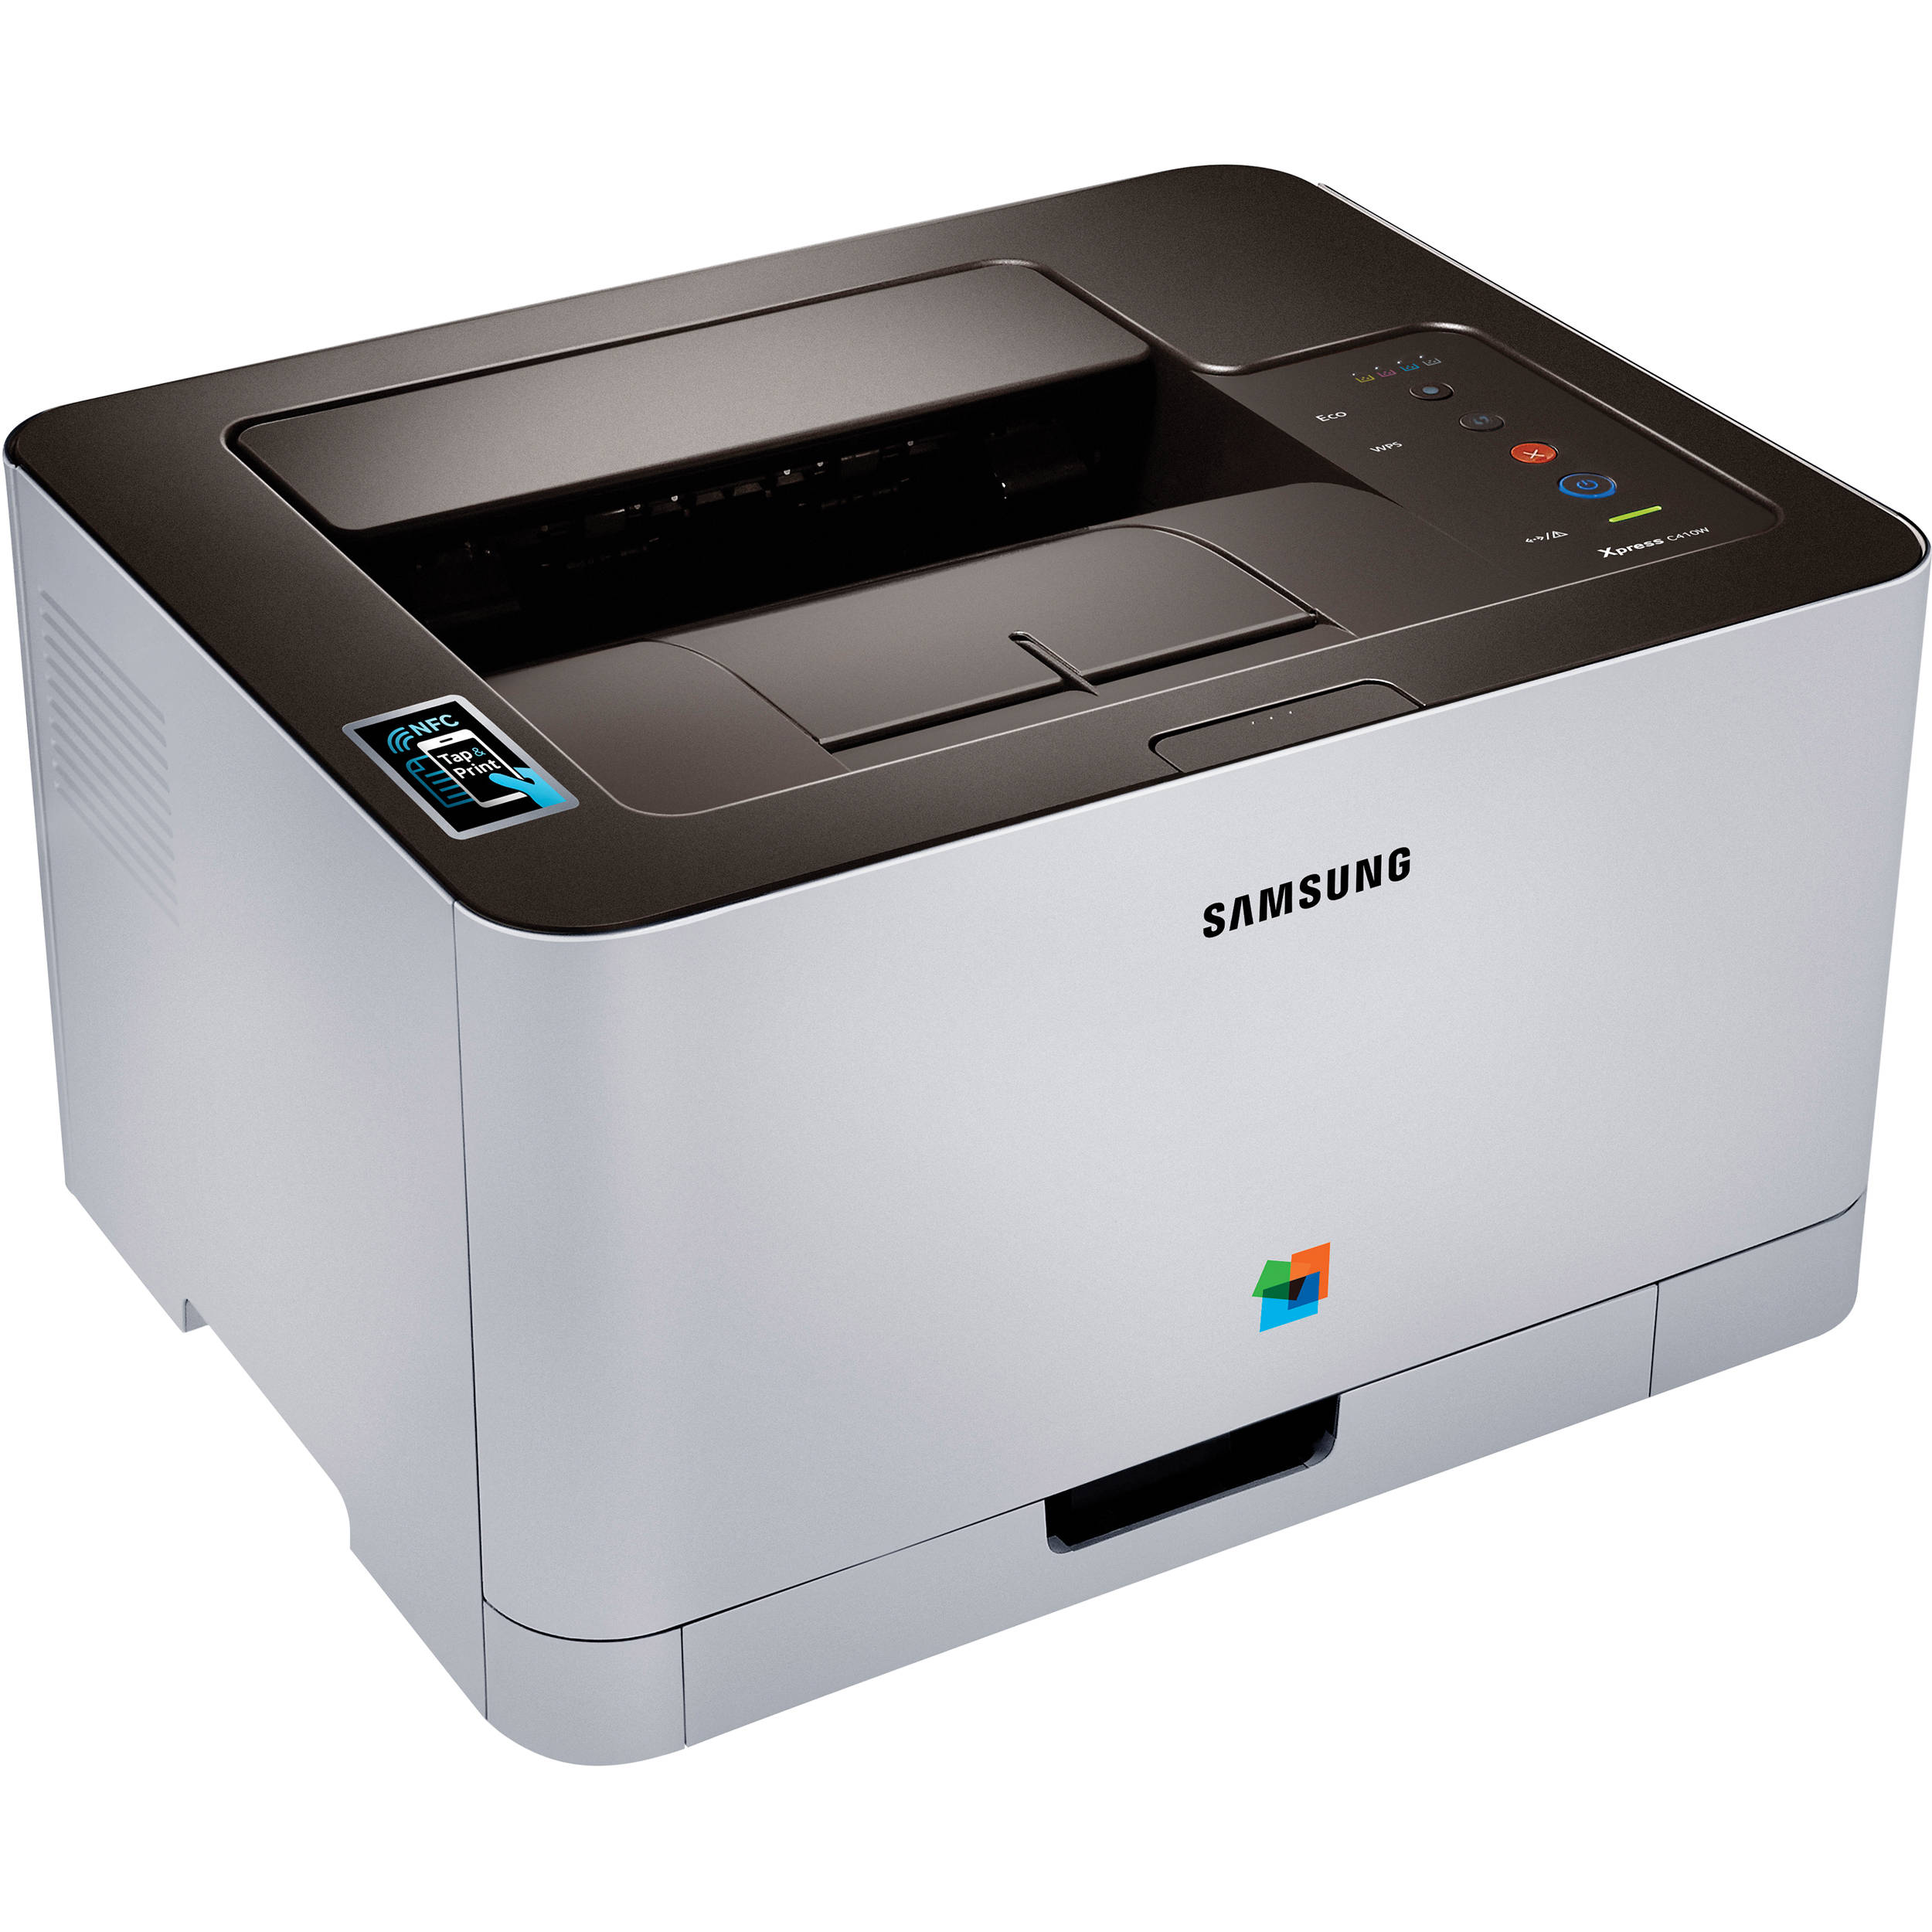 Color printers laser - Samsung Xpress C410w Color Laser Printer